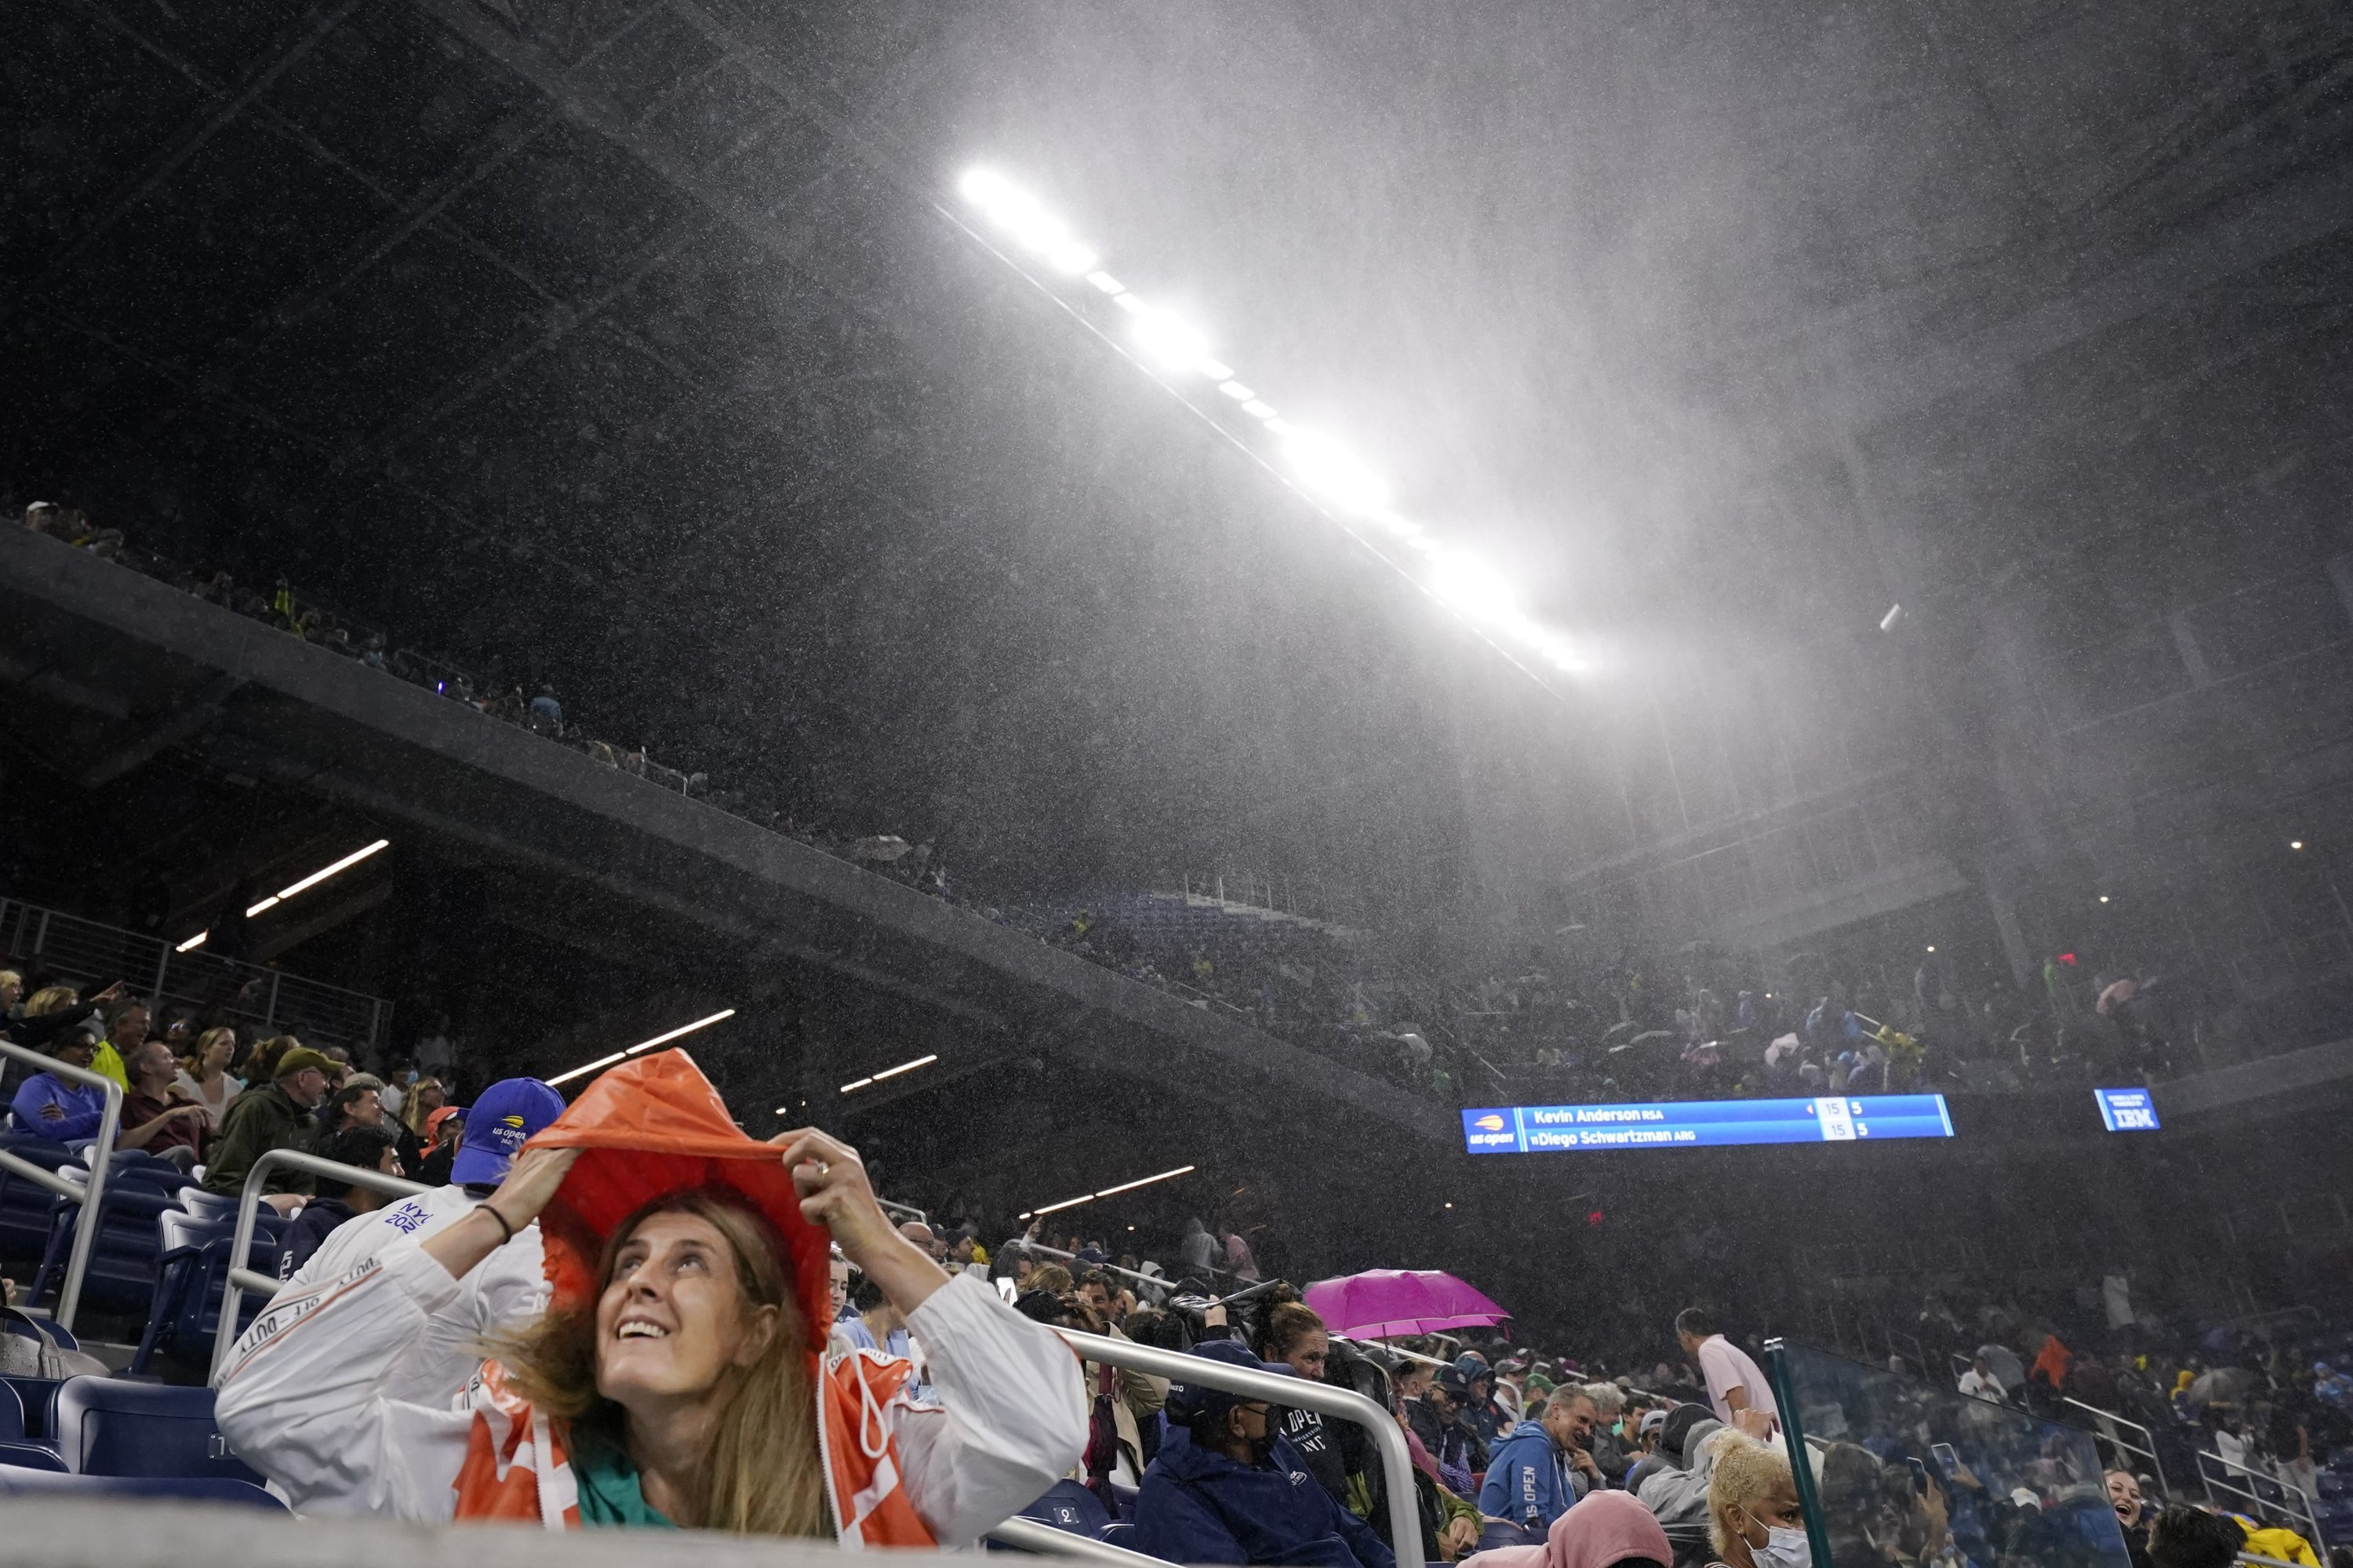 A fan covers herself from rain in Louis Armstrong Stadium during a match U.S. Open second-round match, New York, U.S., Sept. 1, 2021. (AP Photo)